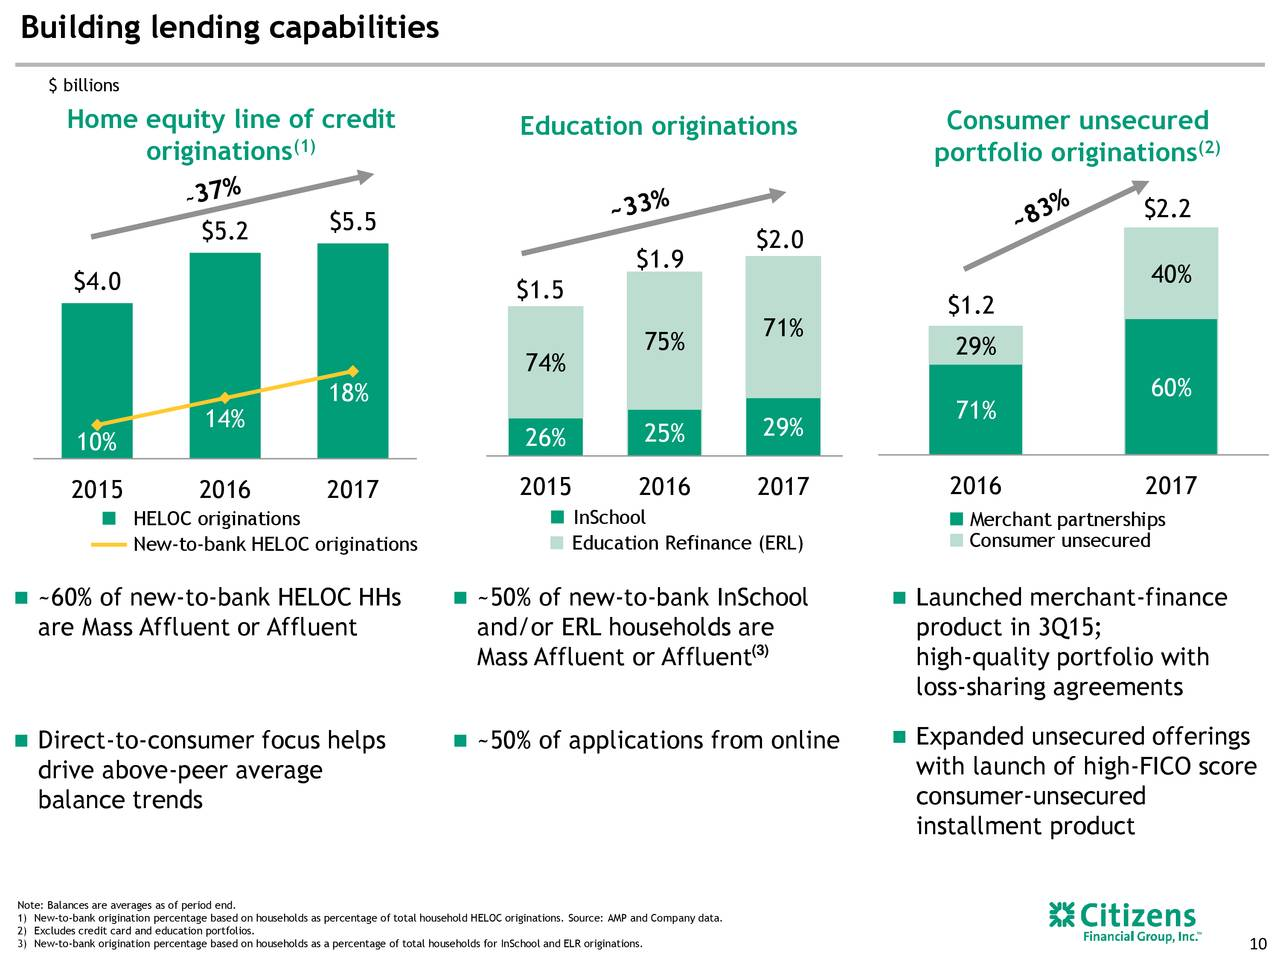 Us Bank Home Equity Line Of Credit >> Citizens Financial (CFG) Presents At Morgan Stanley Financials Conference - Slideshow - Citizens ...